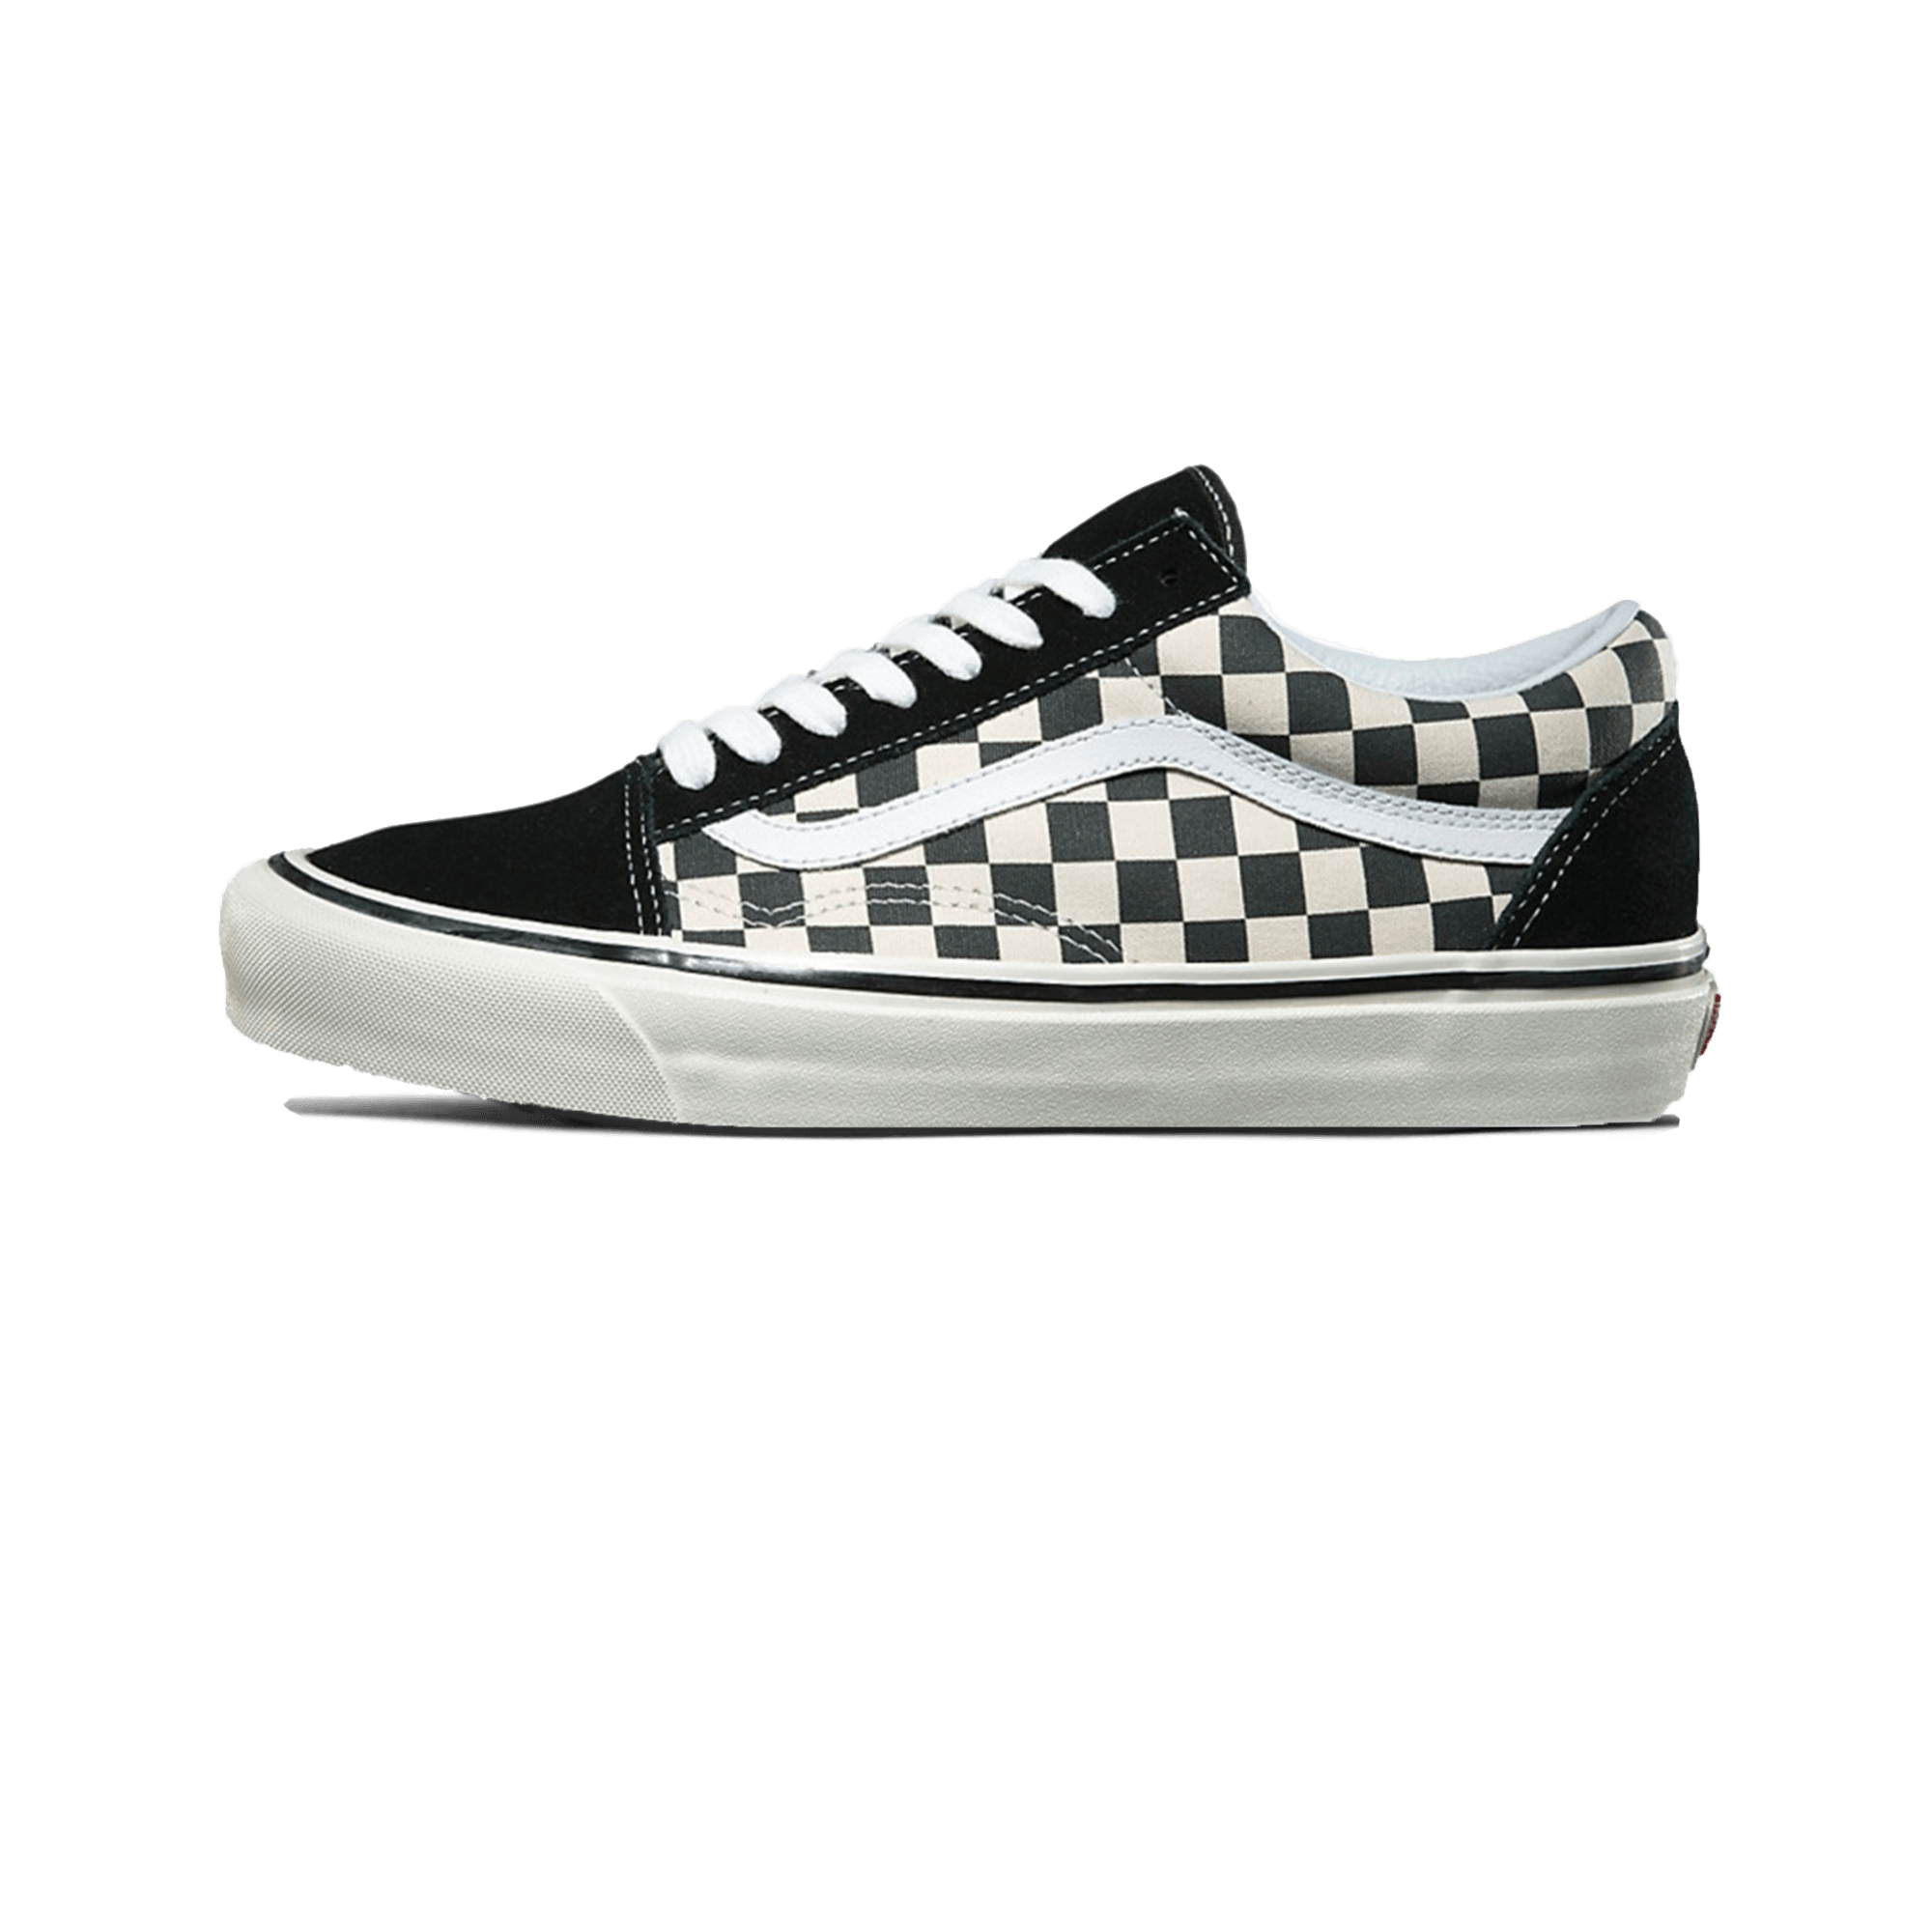 Vans Png (99+ images in Collection) Page 2.